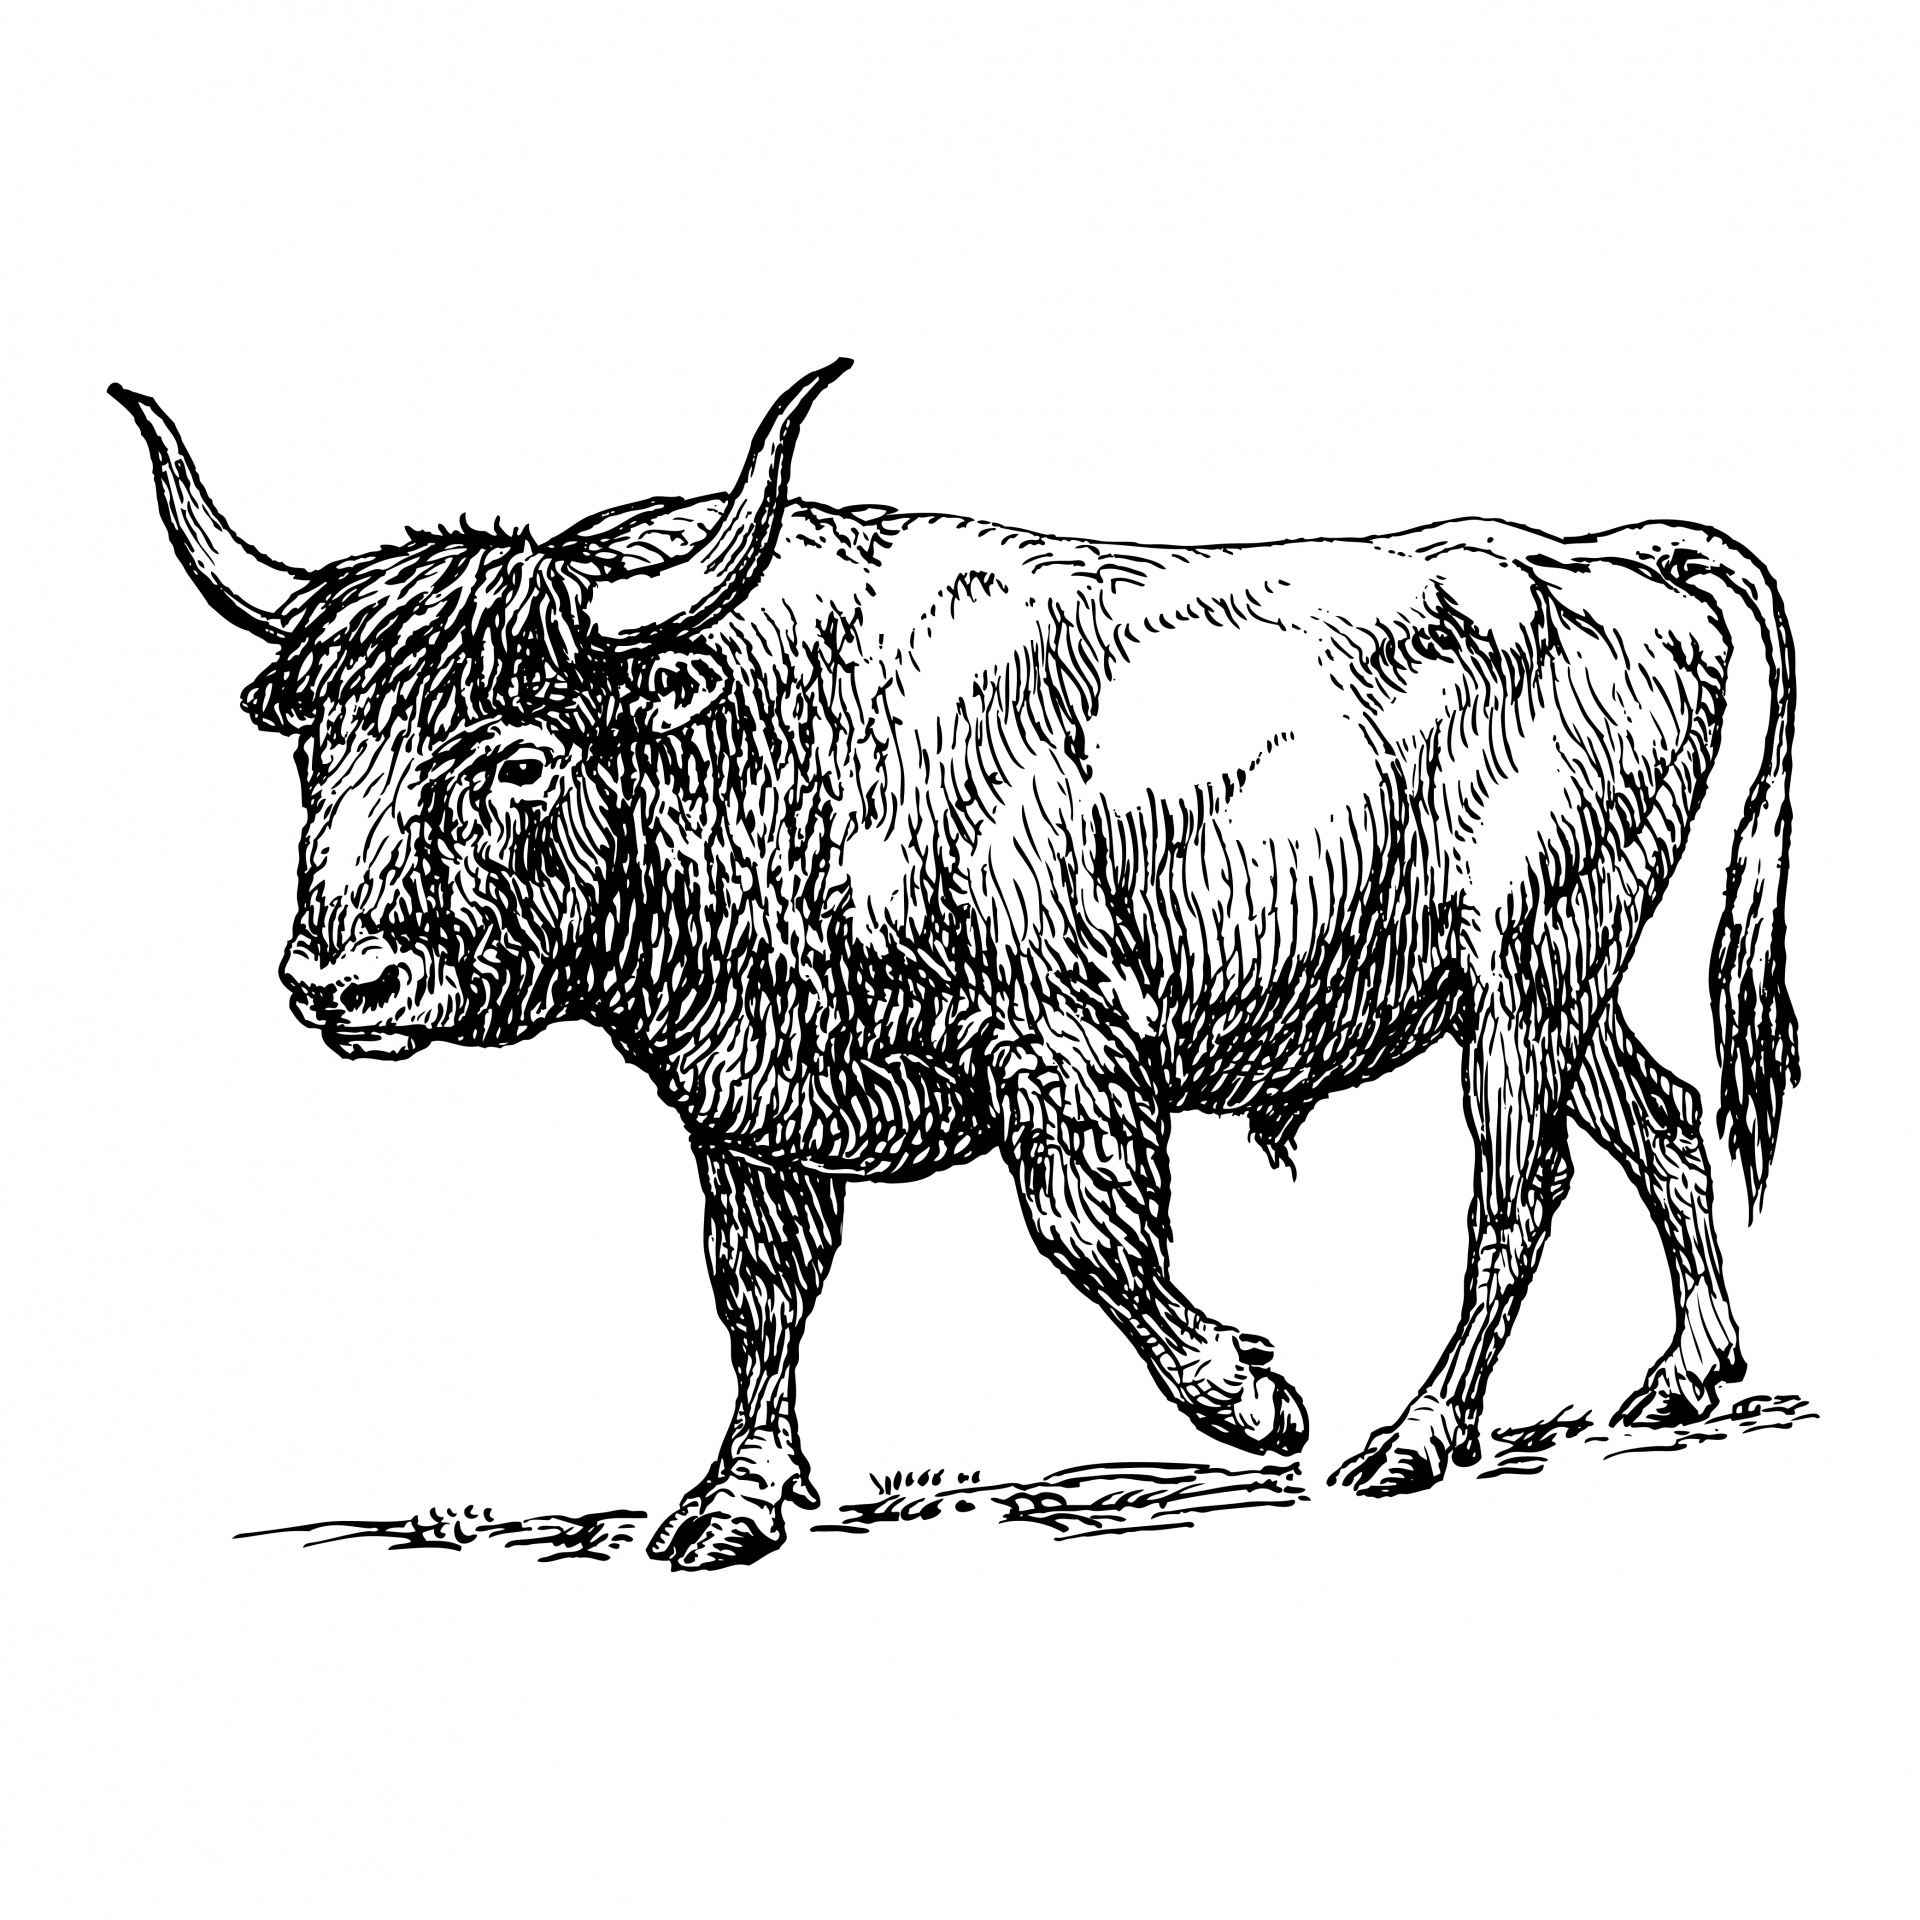 Ox clipart #15, Download drawings